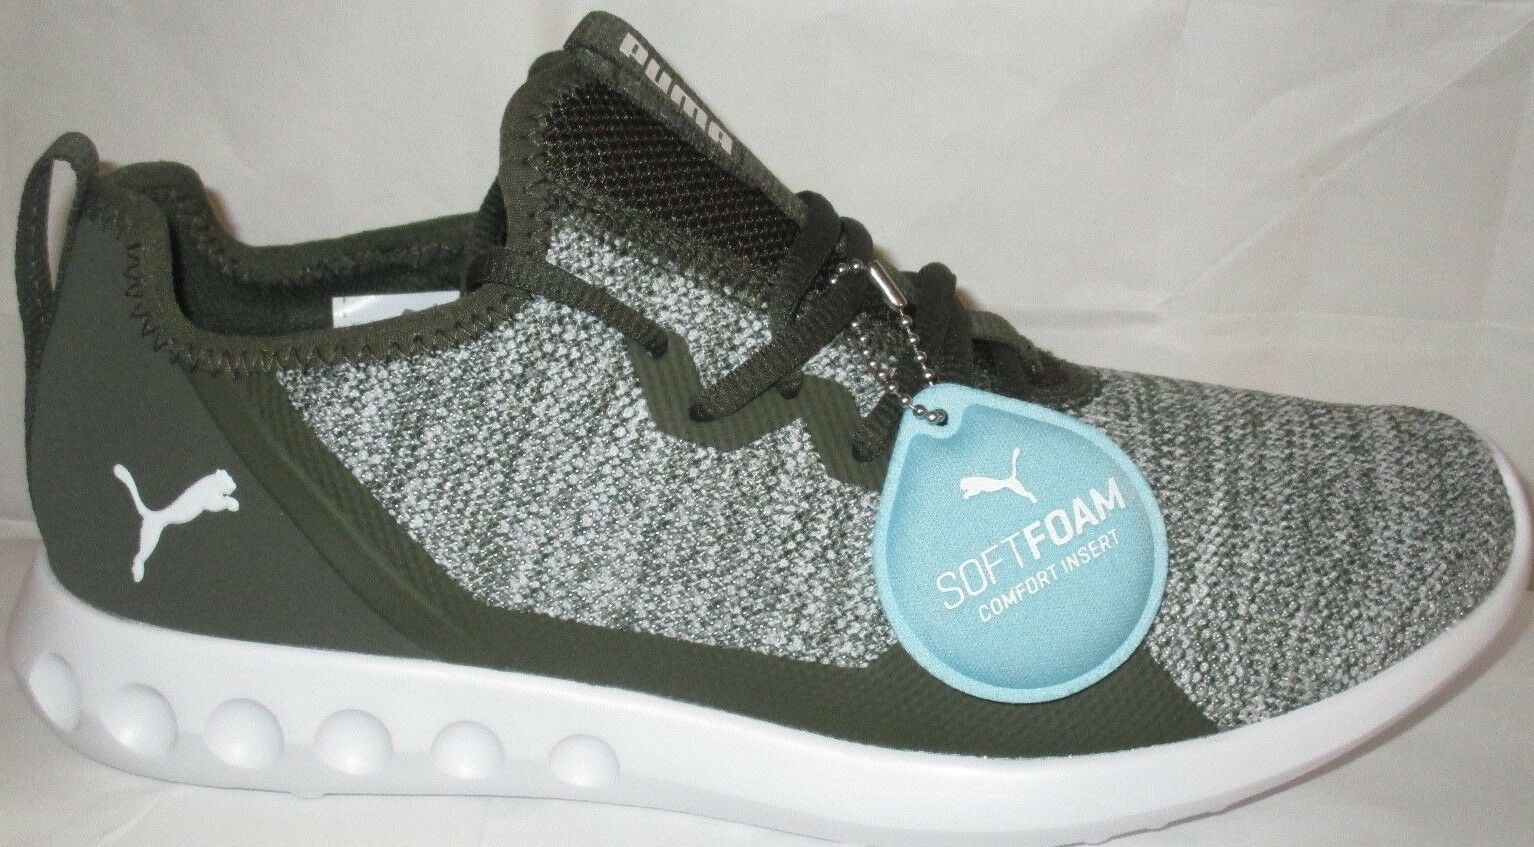 MEN'S PUMA CARSON 2 X KNIT FOREST NIGHT-PUMA WH SOFT FOAM COMFORT SHOES SIZE 10